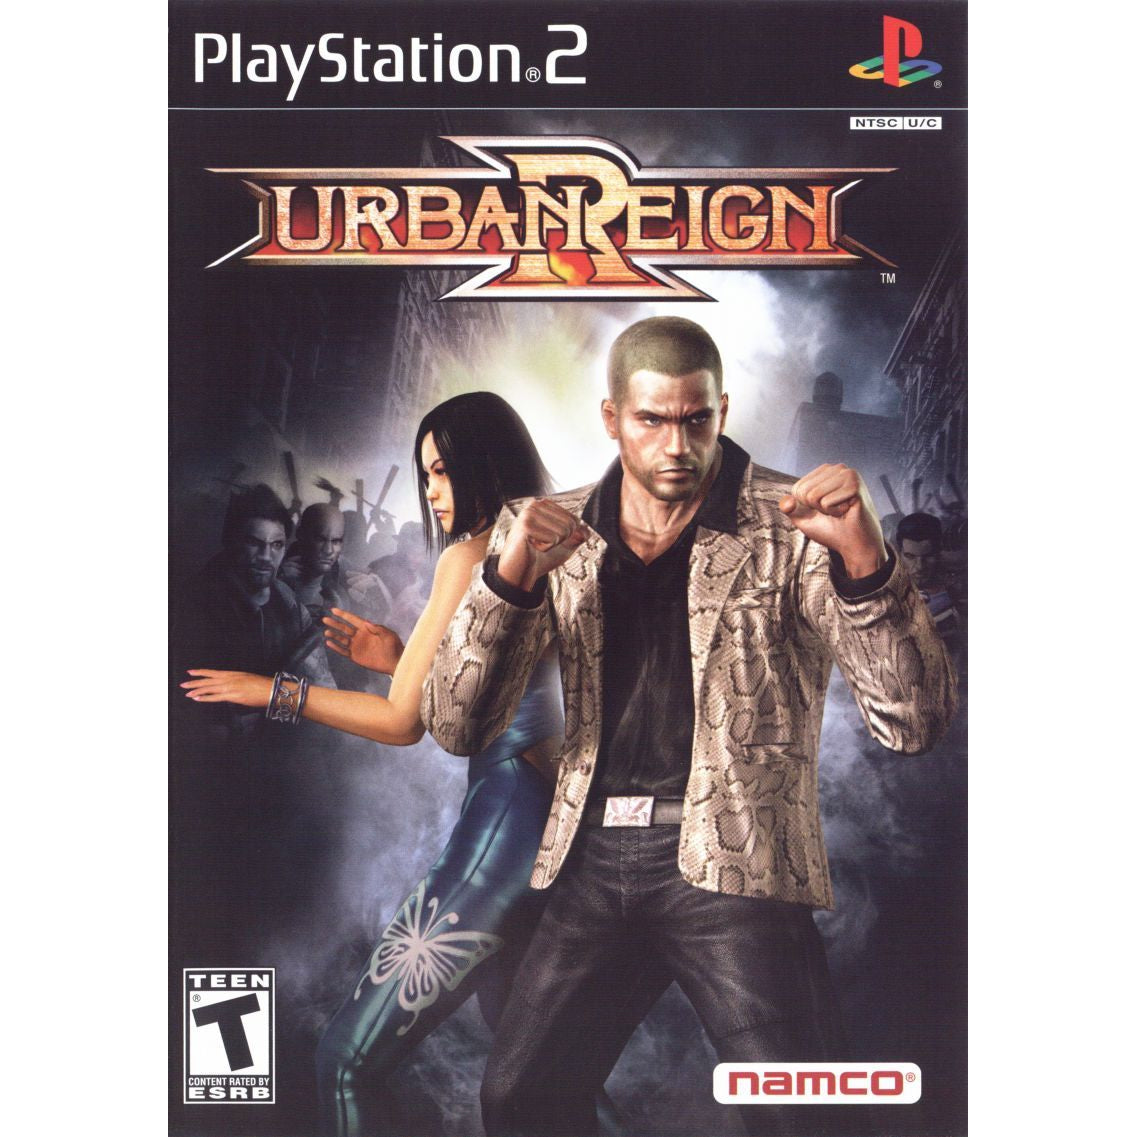 Urban Reign - PlayStation 2 (PS2) Game Complete - YourGamingShop.com - Buy, Sell, Trade Video Games Online. 120 Day Warranty. Satisfaction Guaranteed.